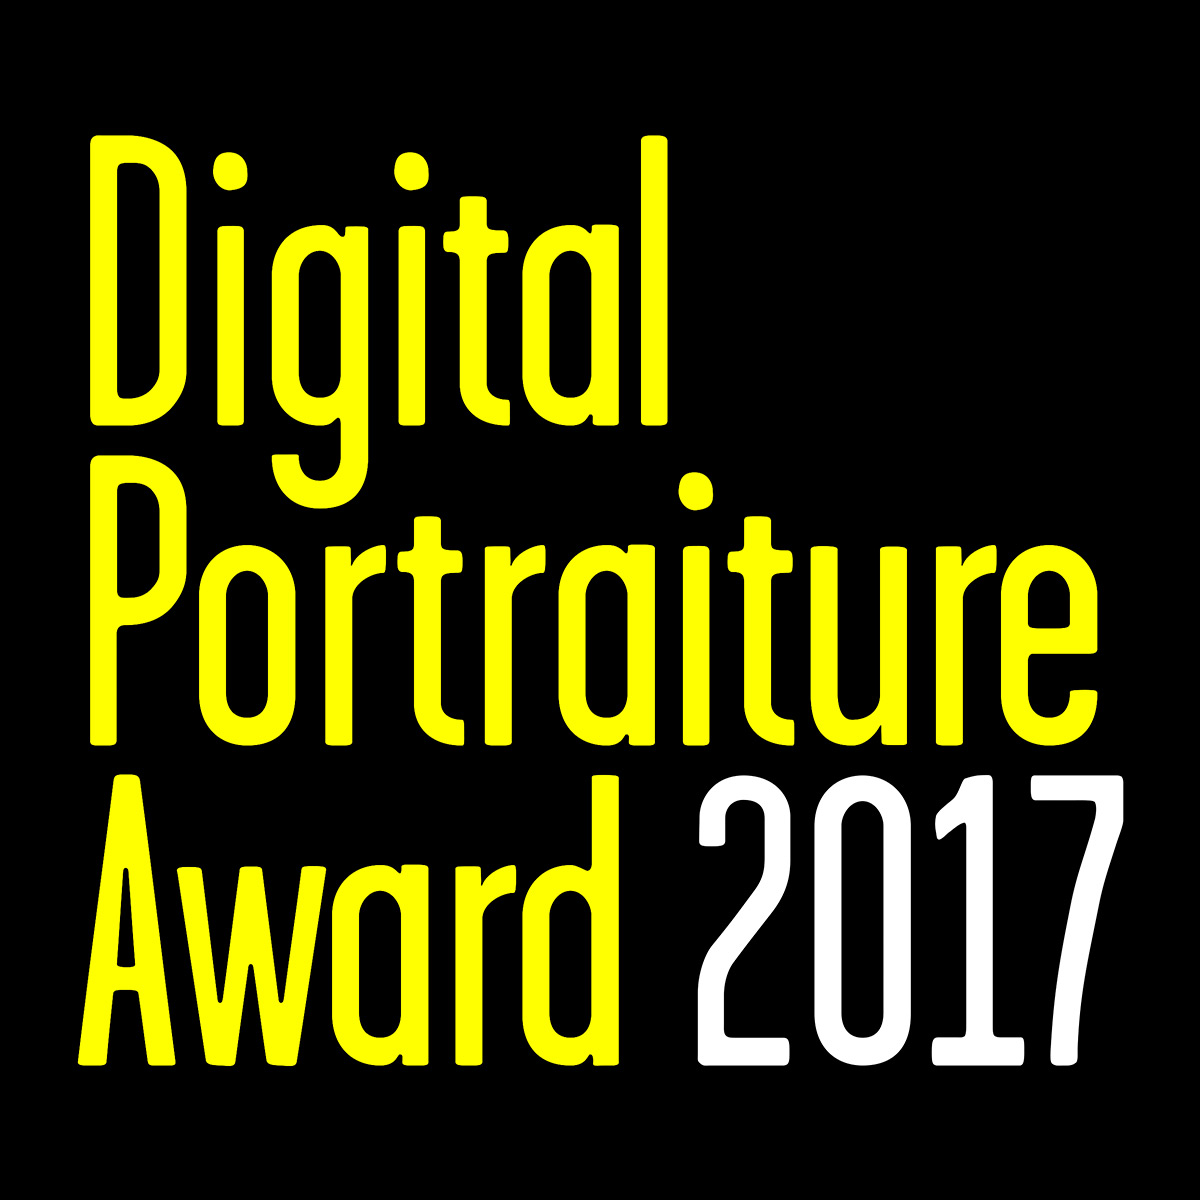 Digital Portraiture Award 2017